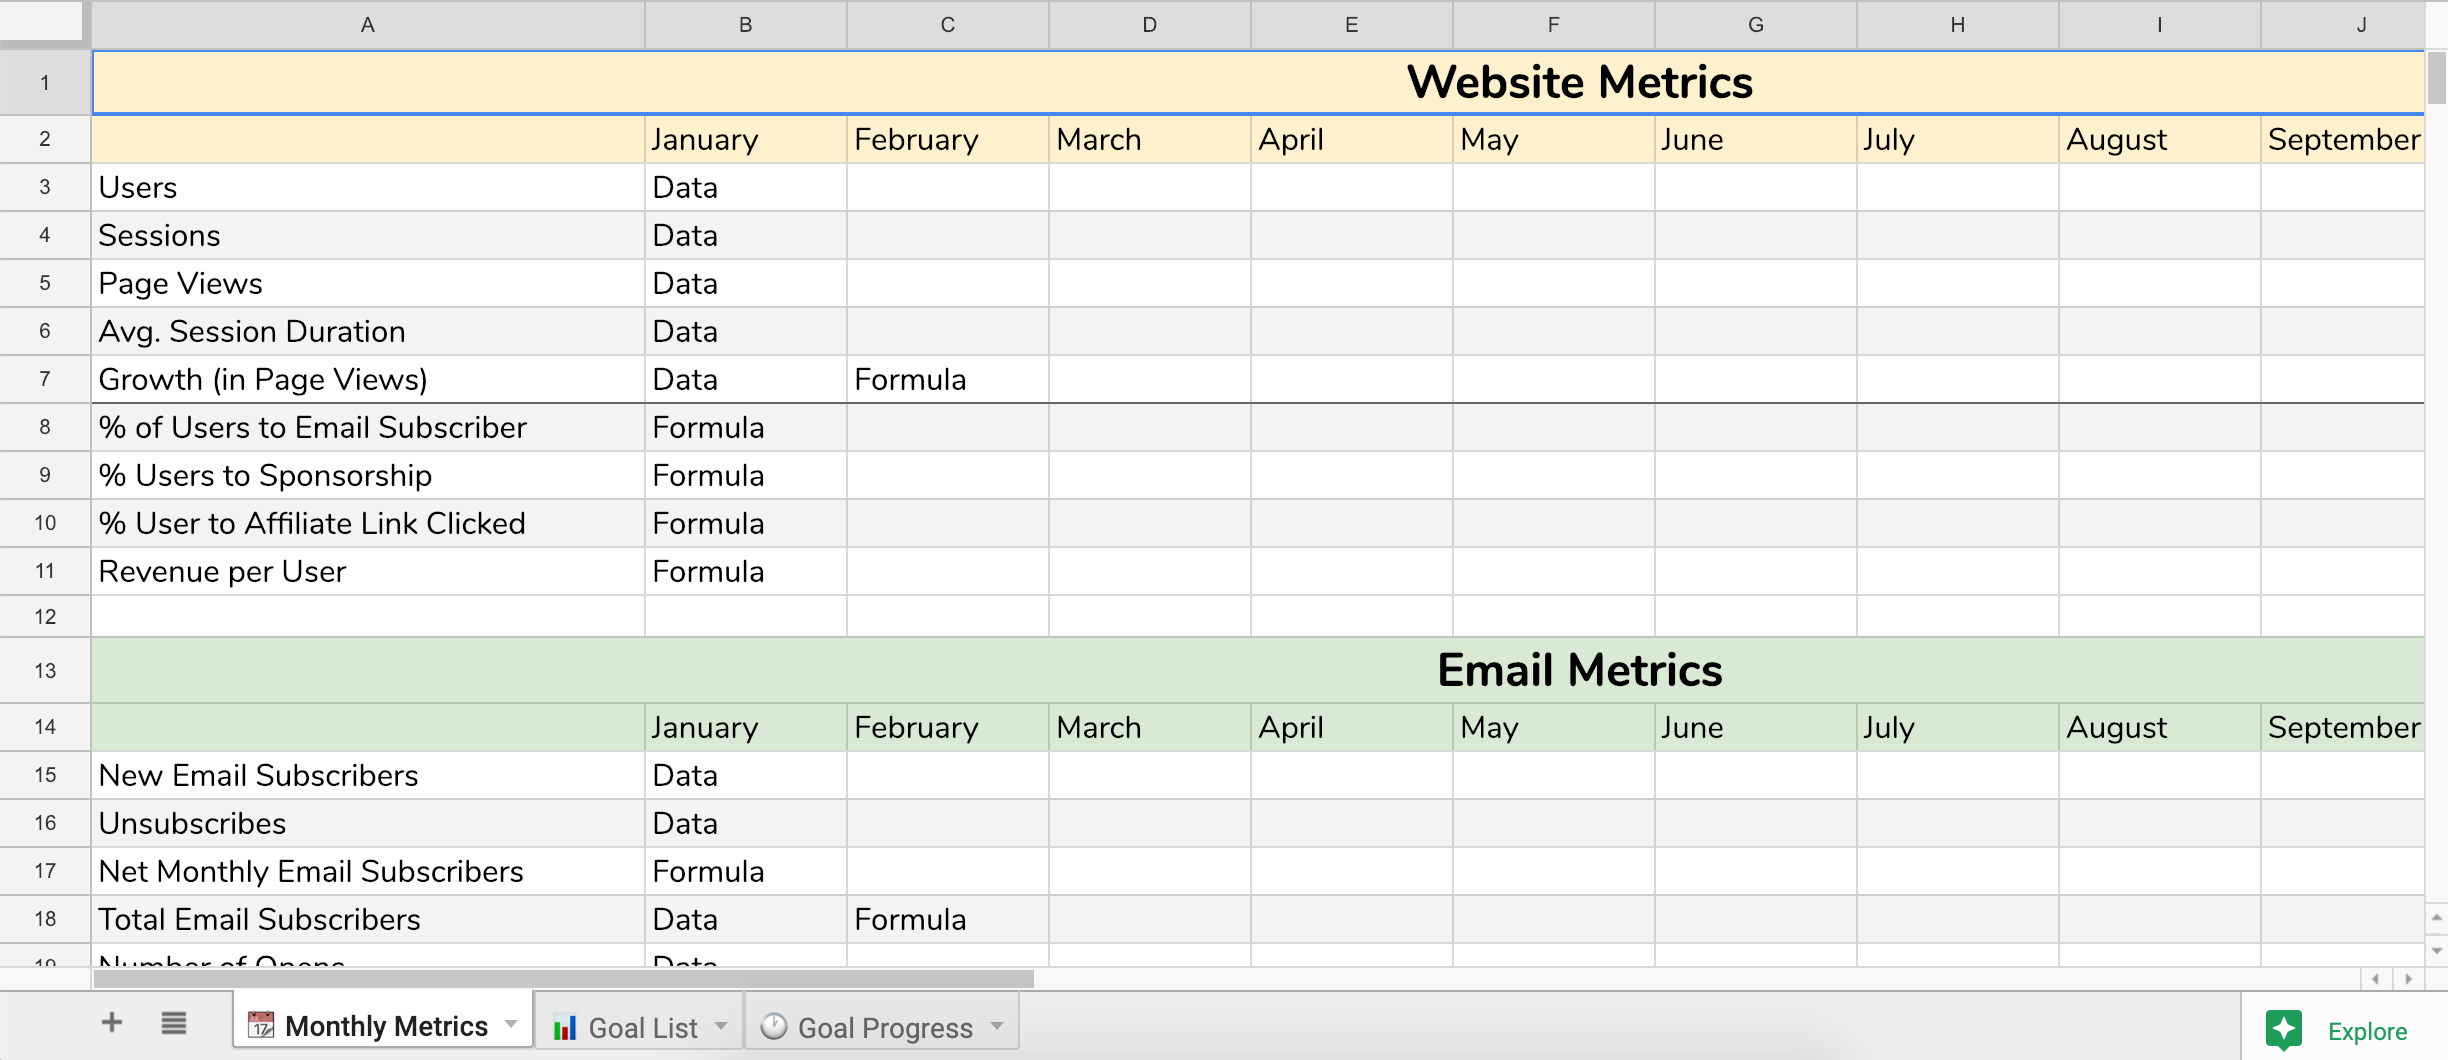 Spreadsheet with goals and metrics